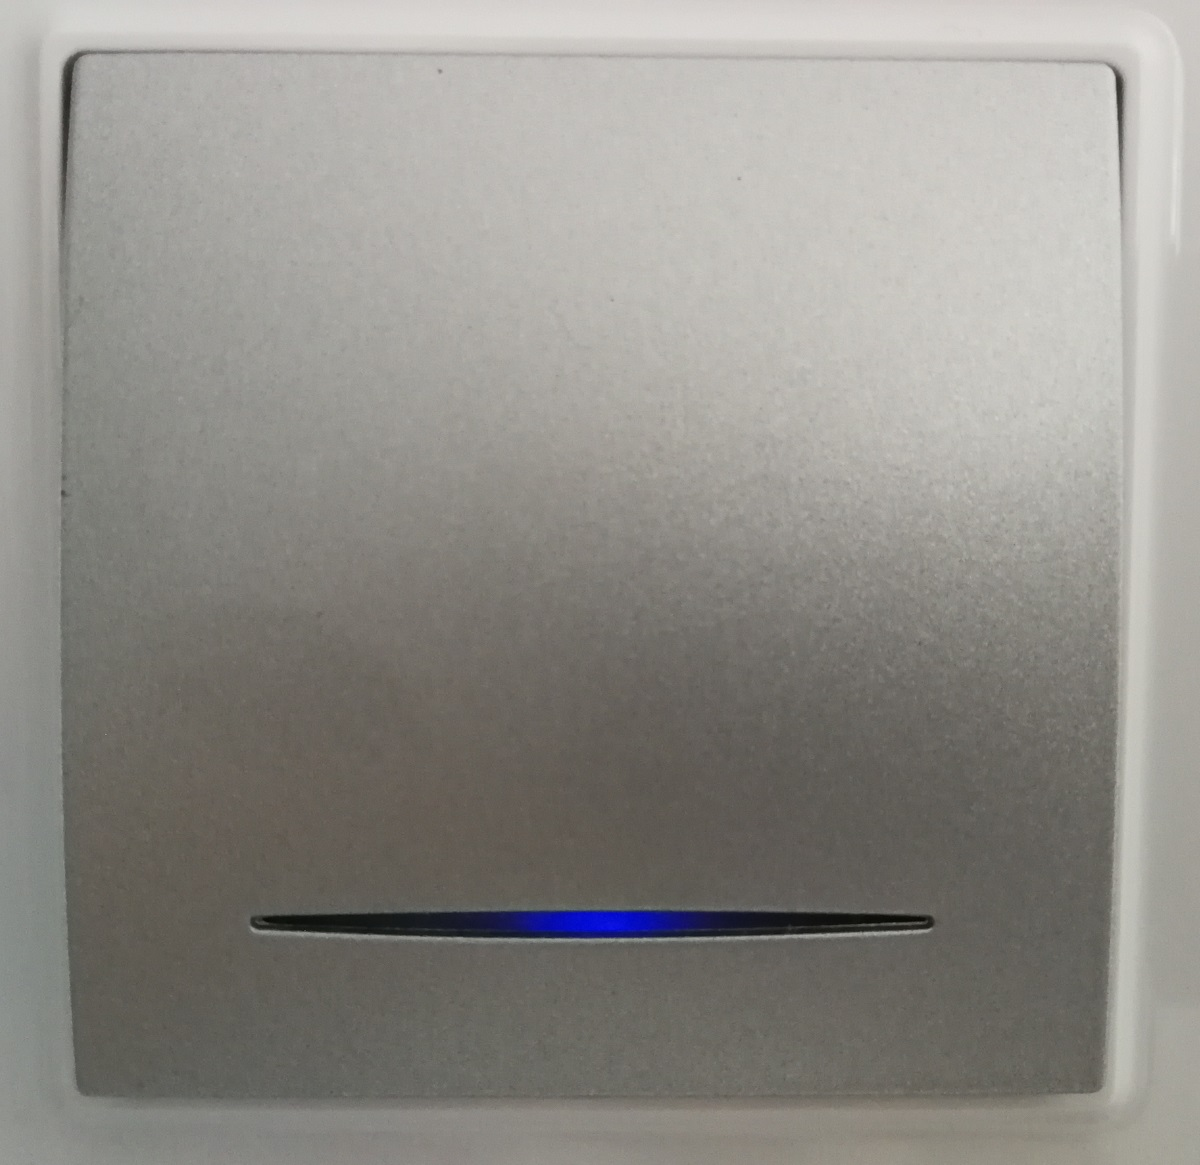 Push-buttons with LED illumination